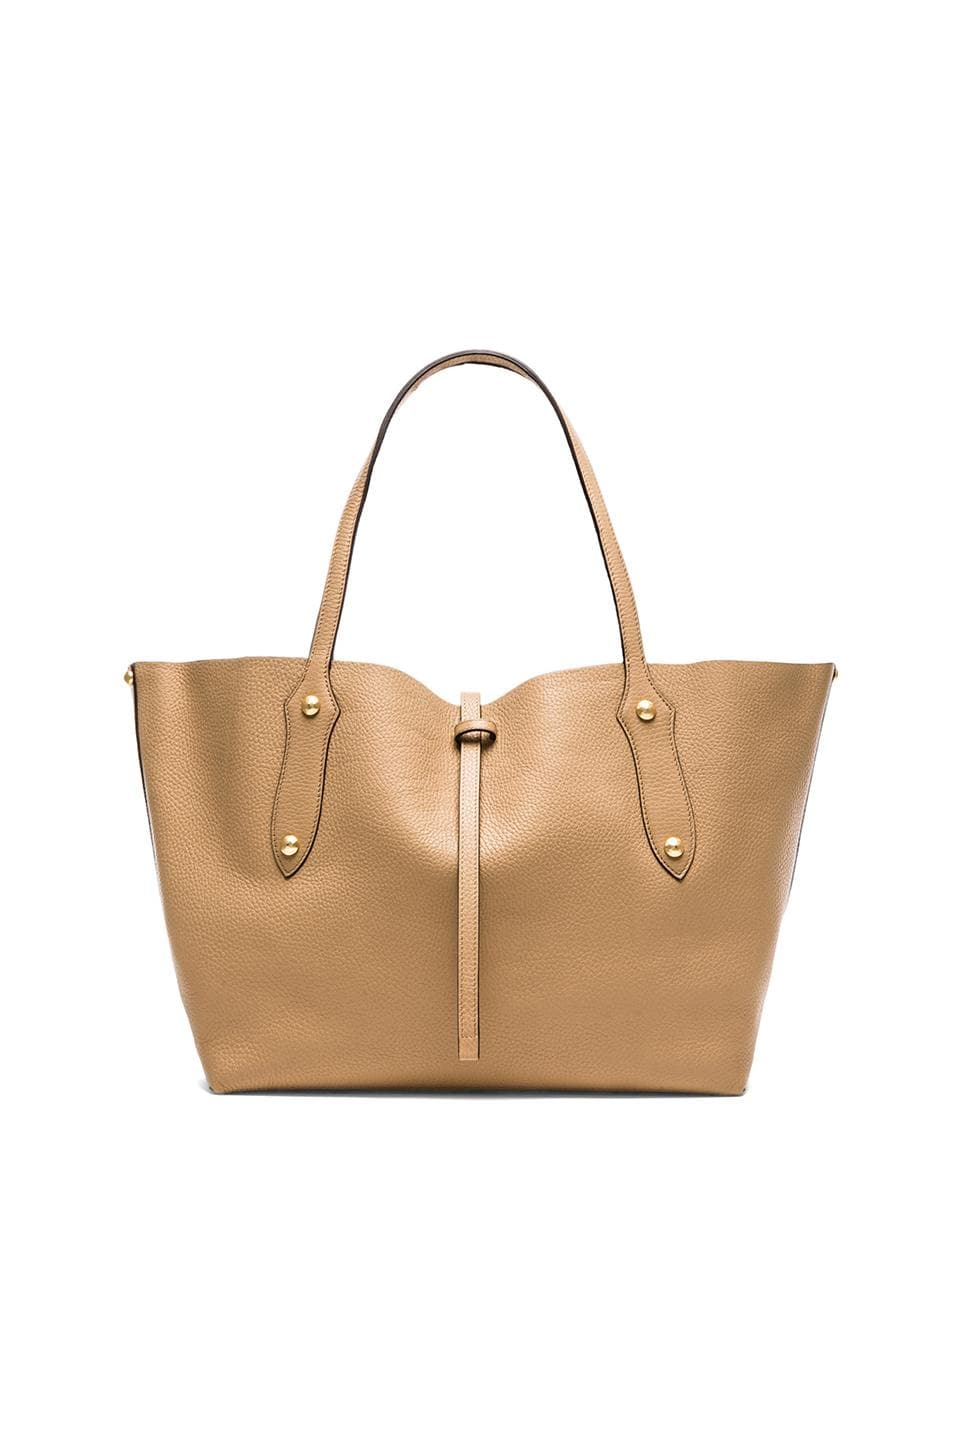 Annabel Ingall Isabella Small Tote in Honey